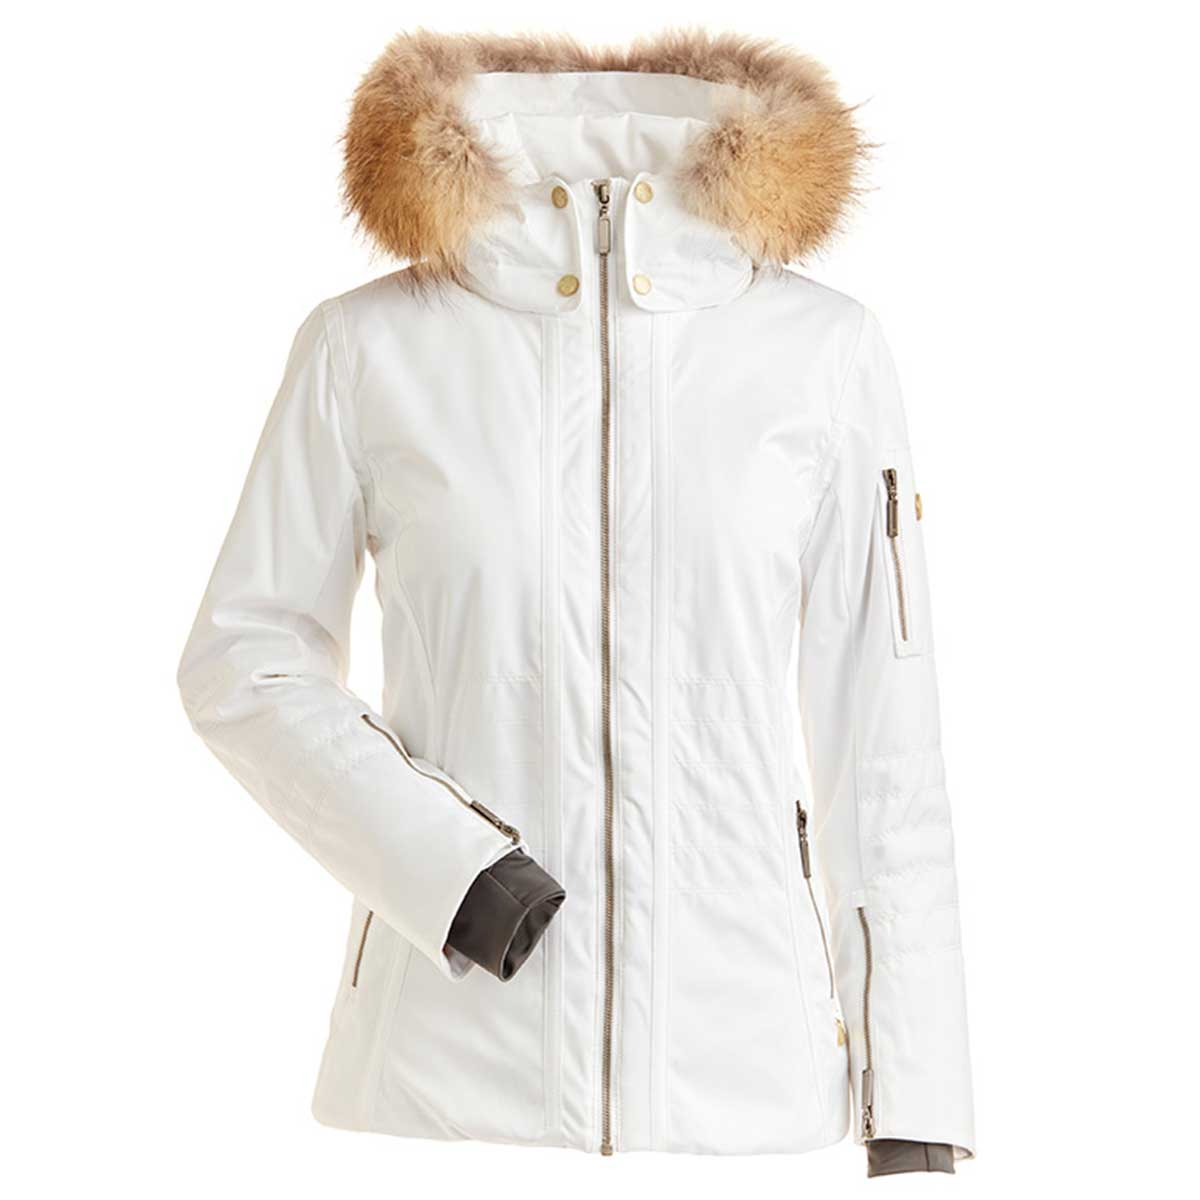 NILS Isa womens jacket in White